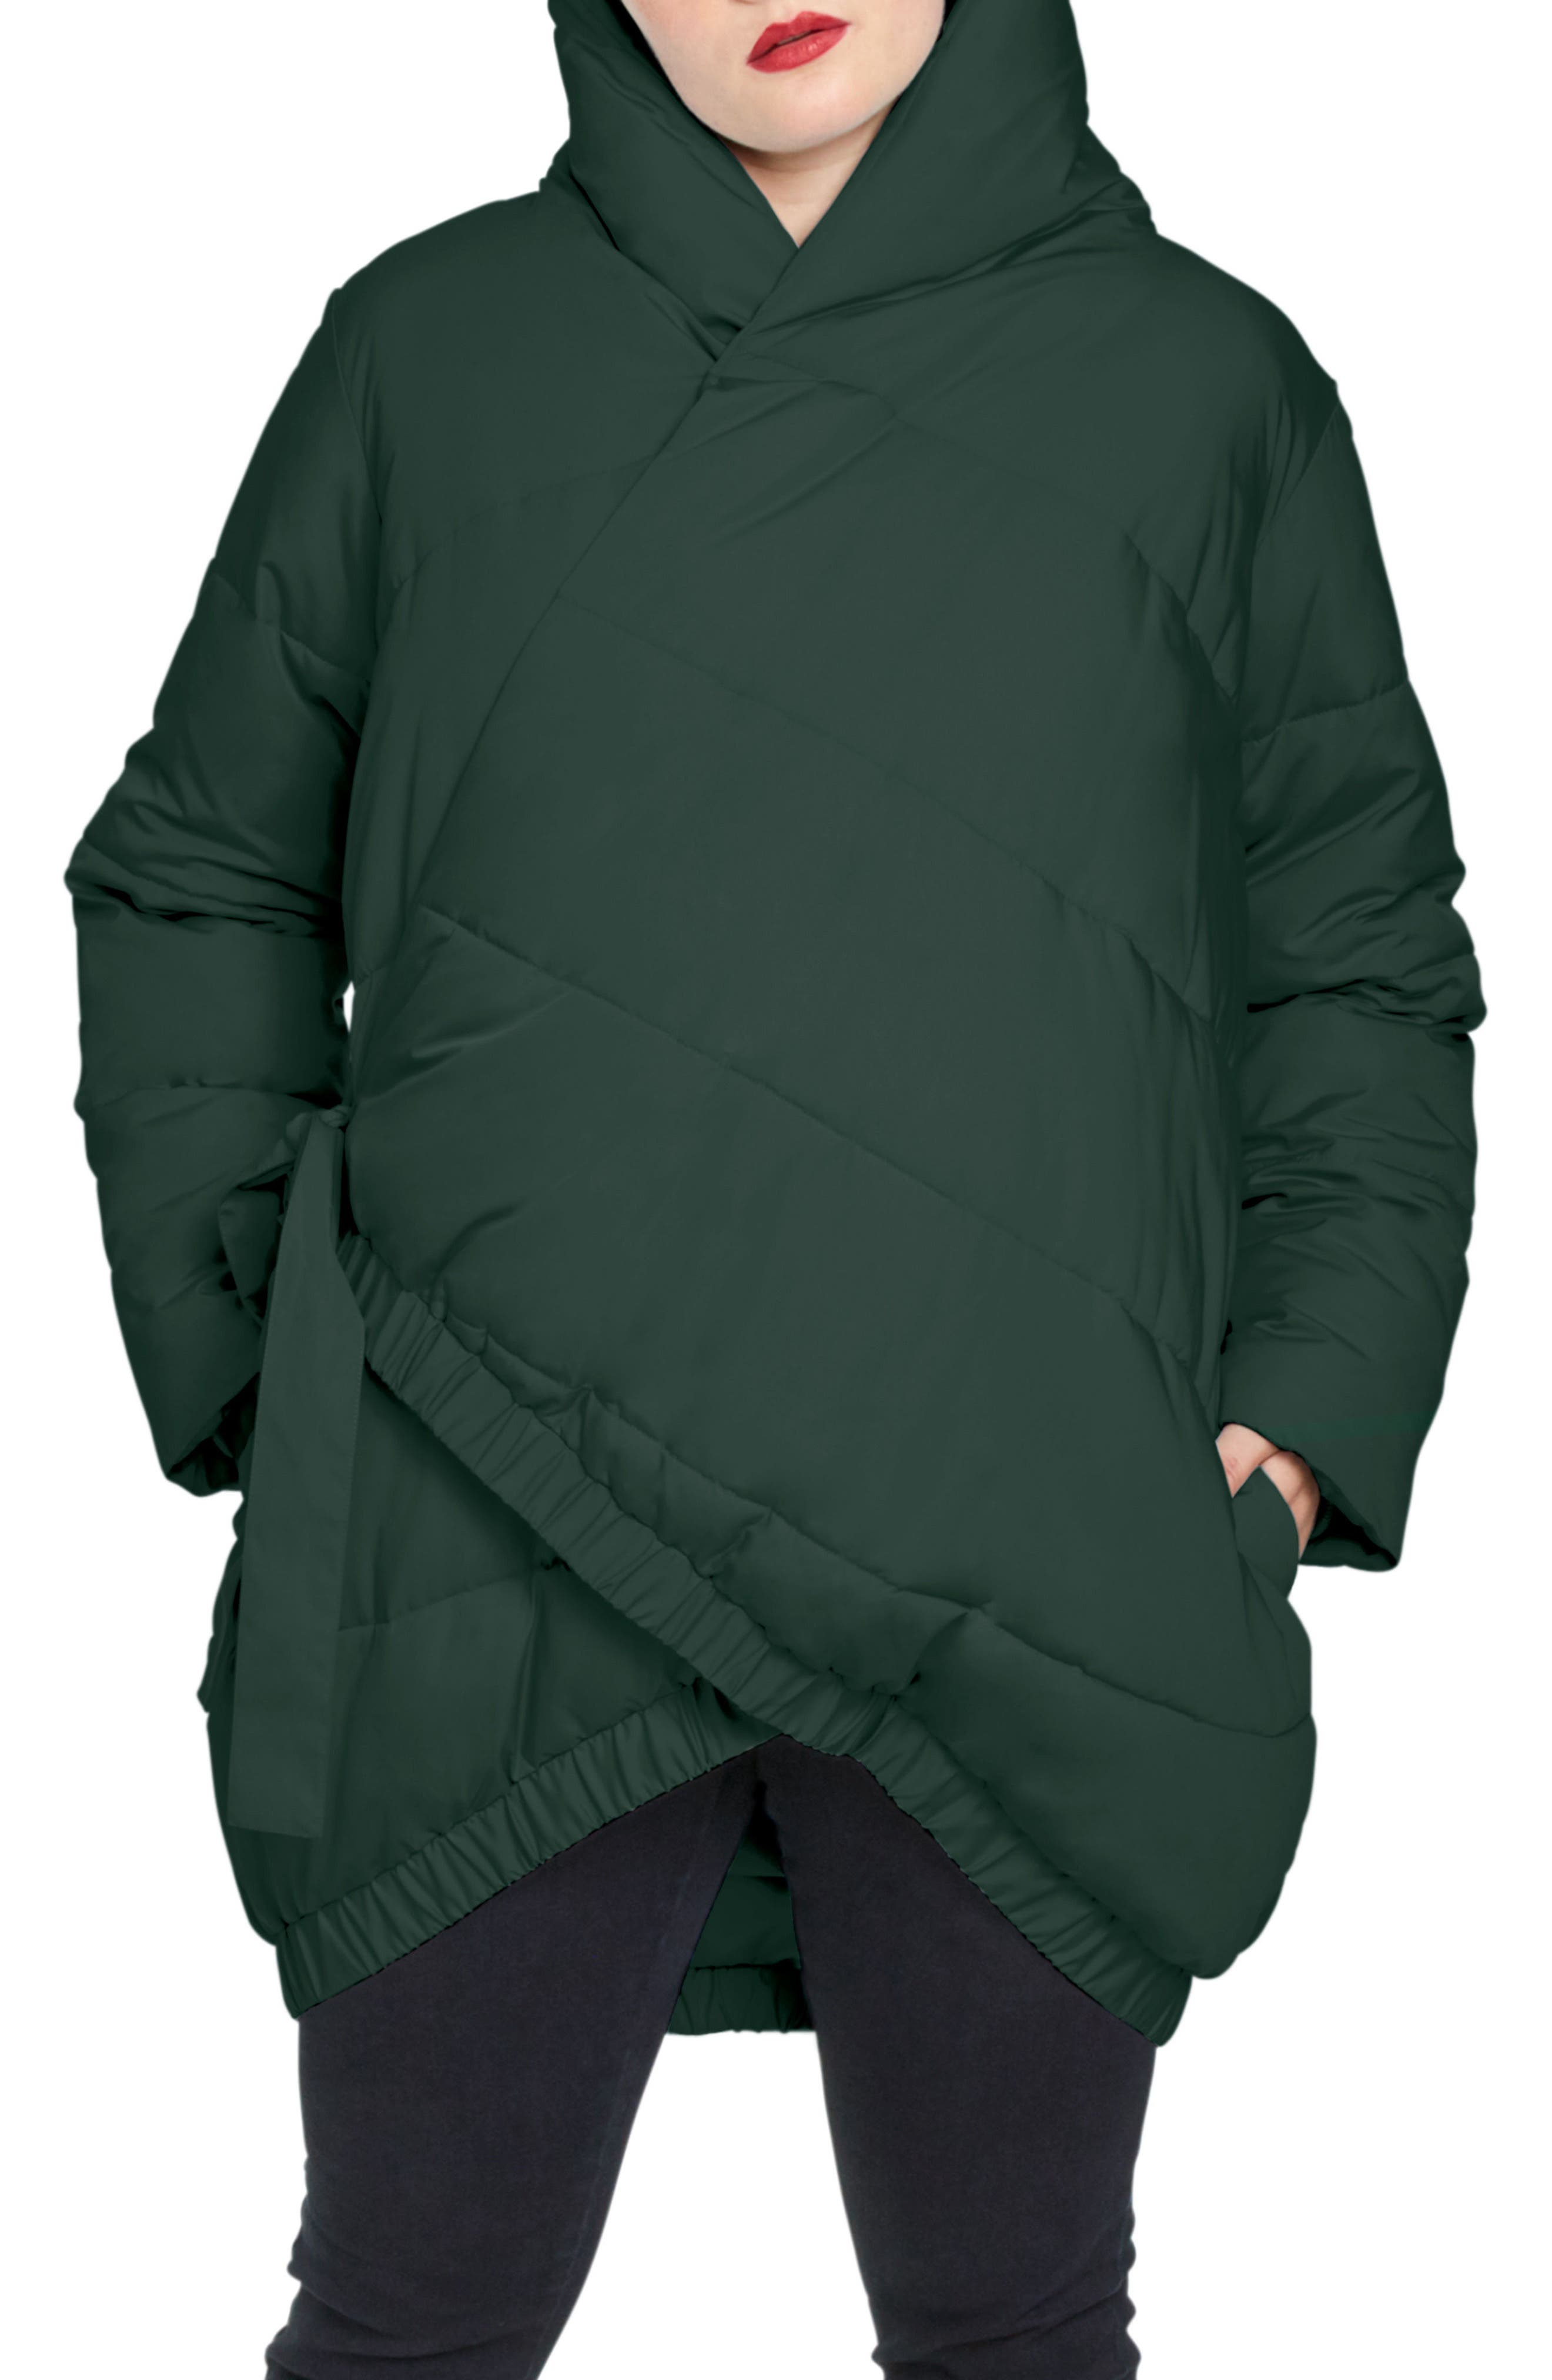 UNIVERSAL STANDARD Kanda Puffer Coat, Main, color, HUNTER GREEN